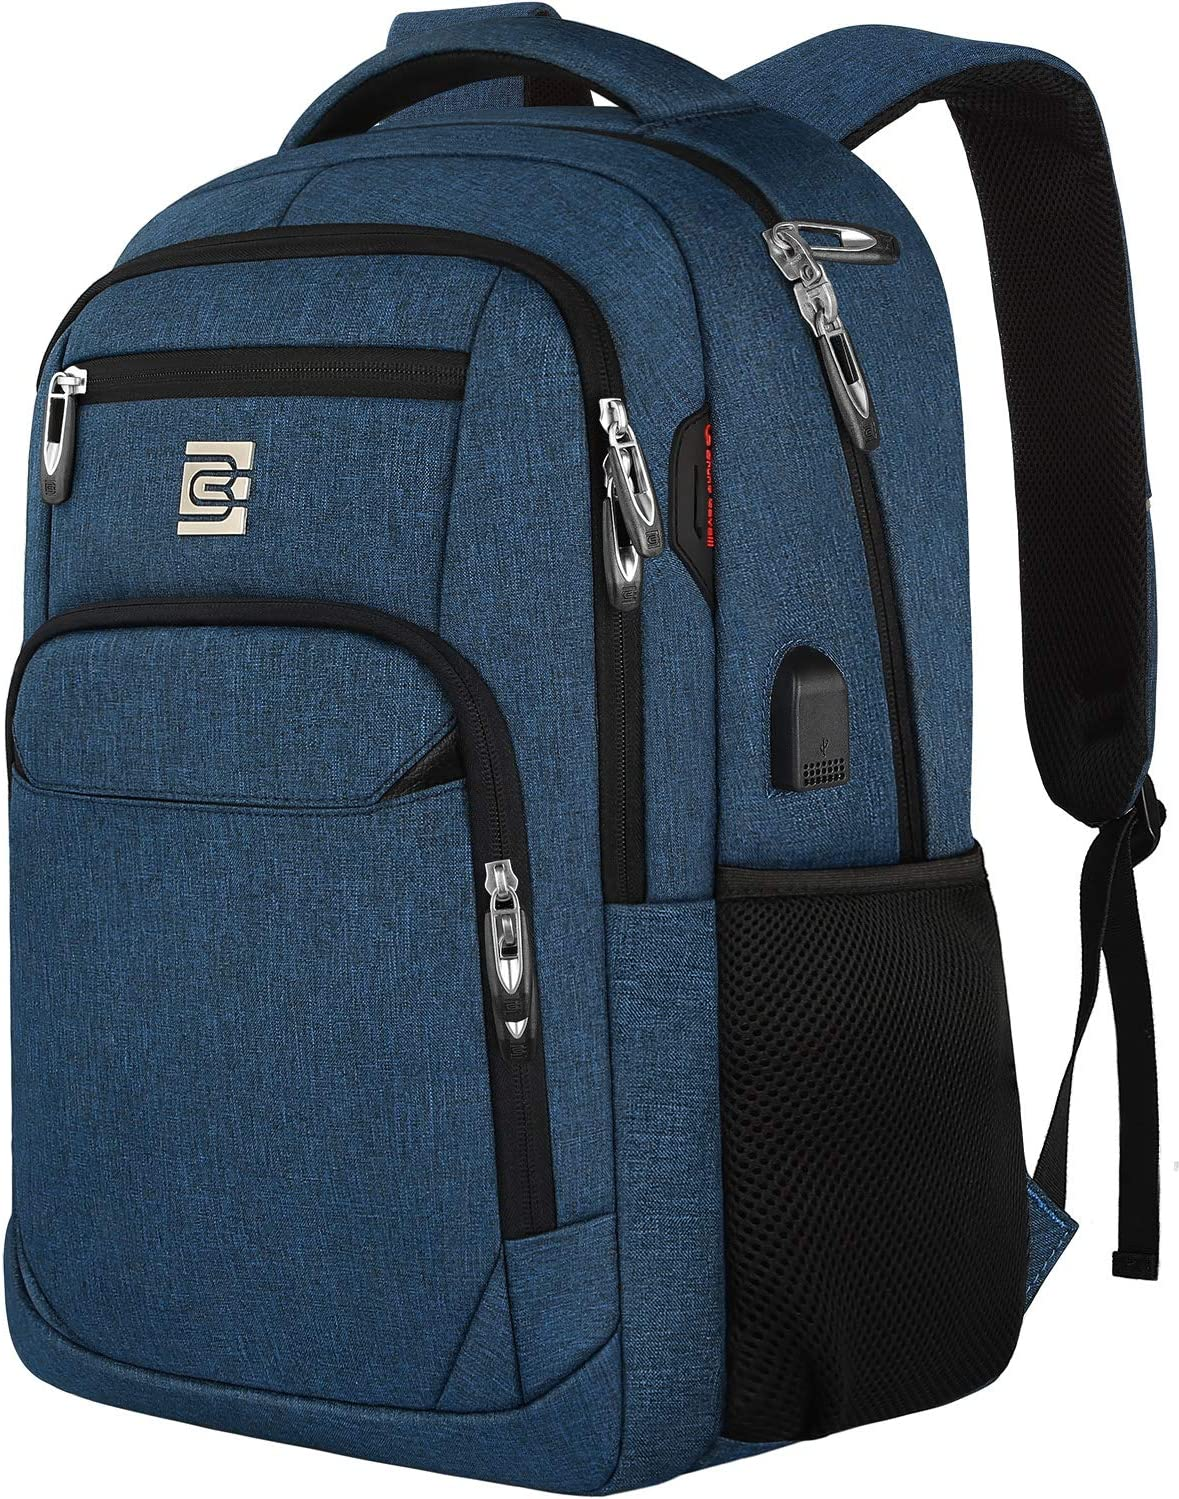 Laptop Backpack,Business Travel Anti Theft Slim Durable Laptops Backpack with USB Charging Port,Water Resistant College School Computer Bag for Women & Men Fits 15.6 Inch Laptop and Notebook - Blue